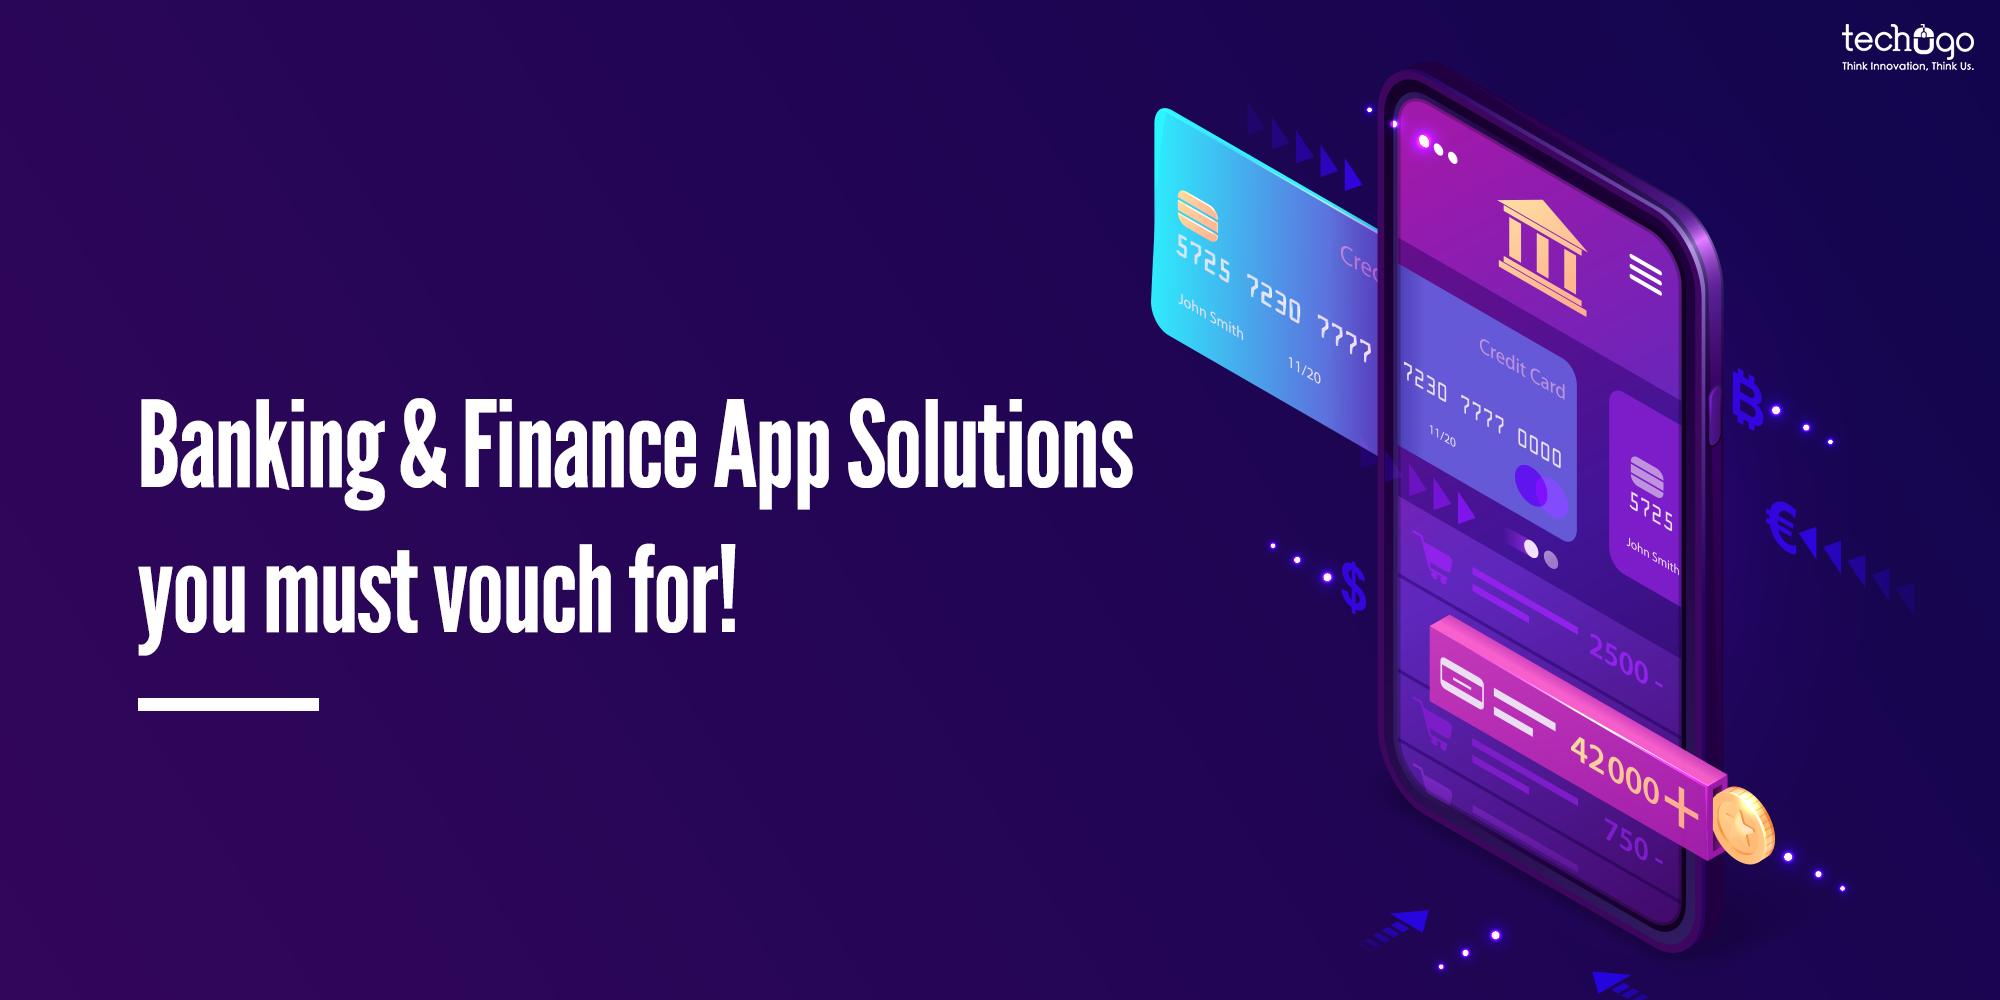 Banking & Finance App Solutions You Must Vouch For!